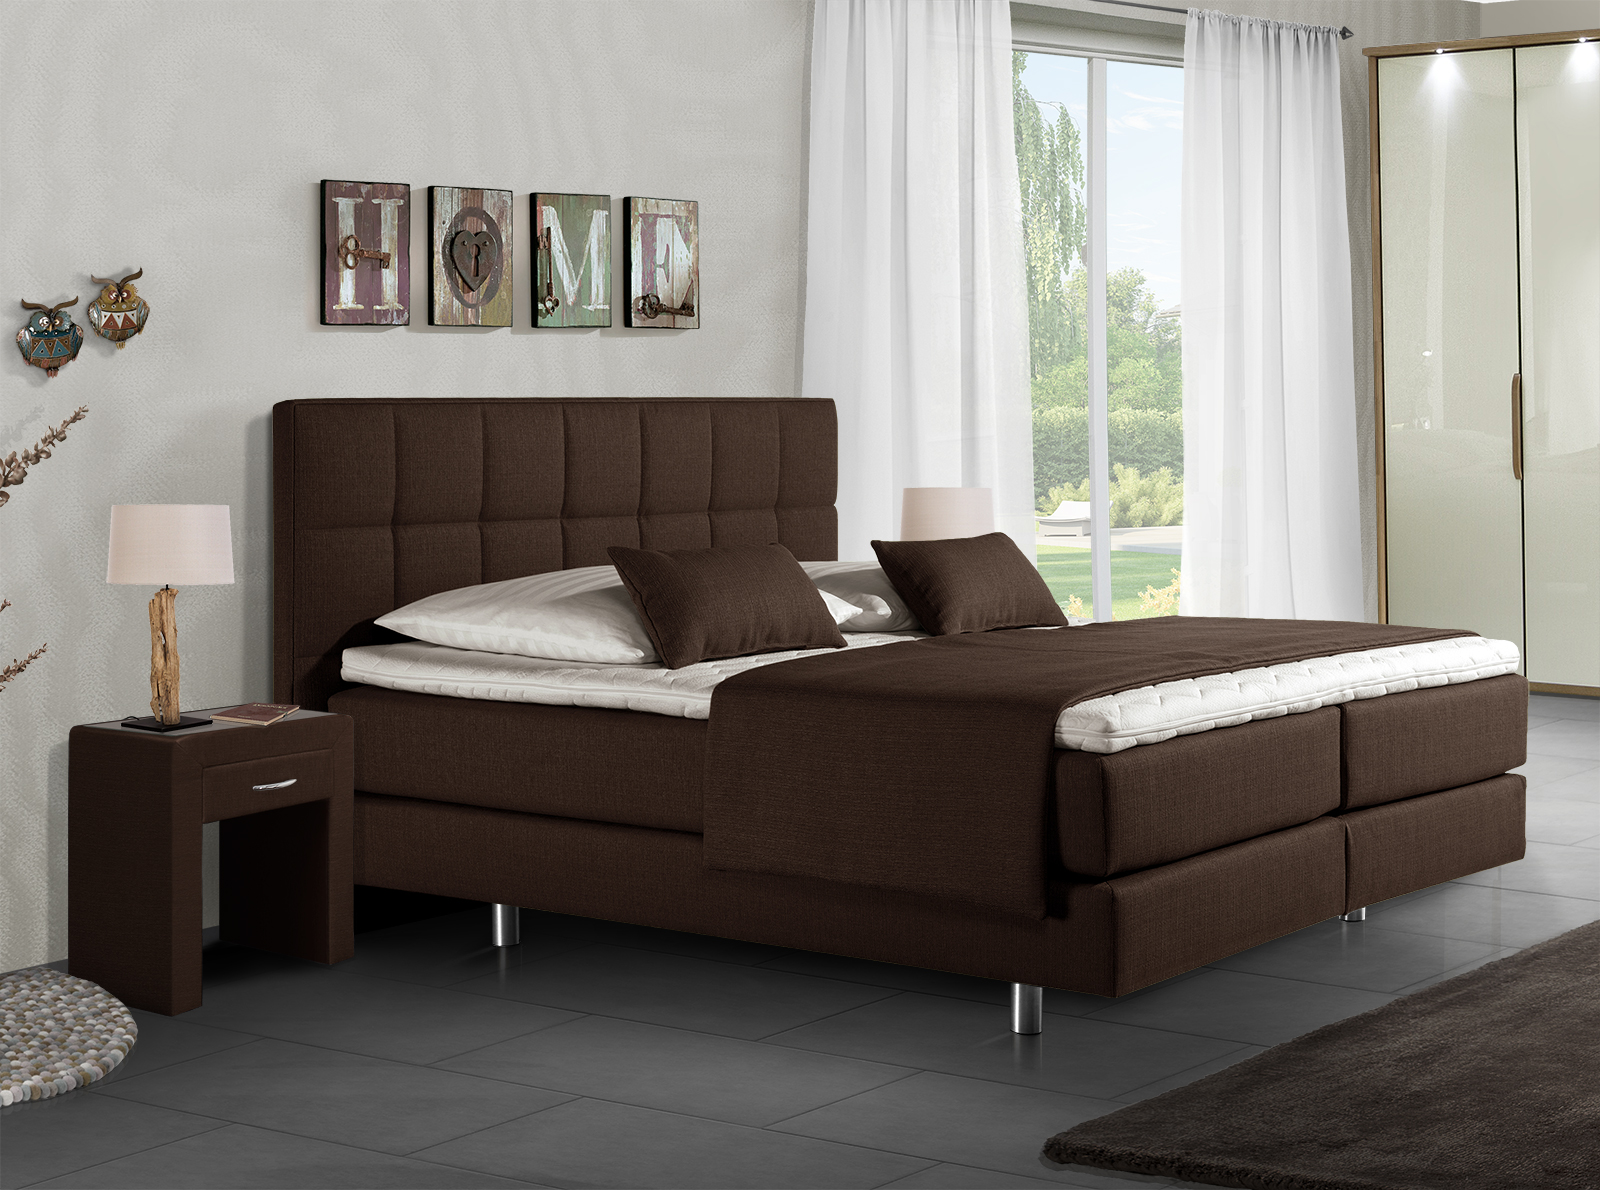 design boxspringbett mit italienischem charme bologna. Black Bedroom Furniture Sets. Home Design Ideas